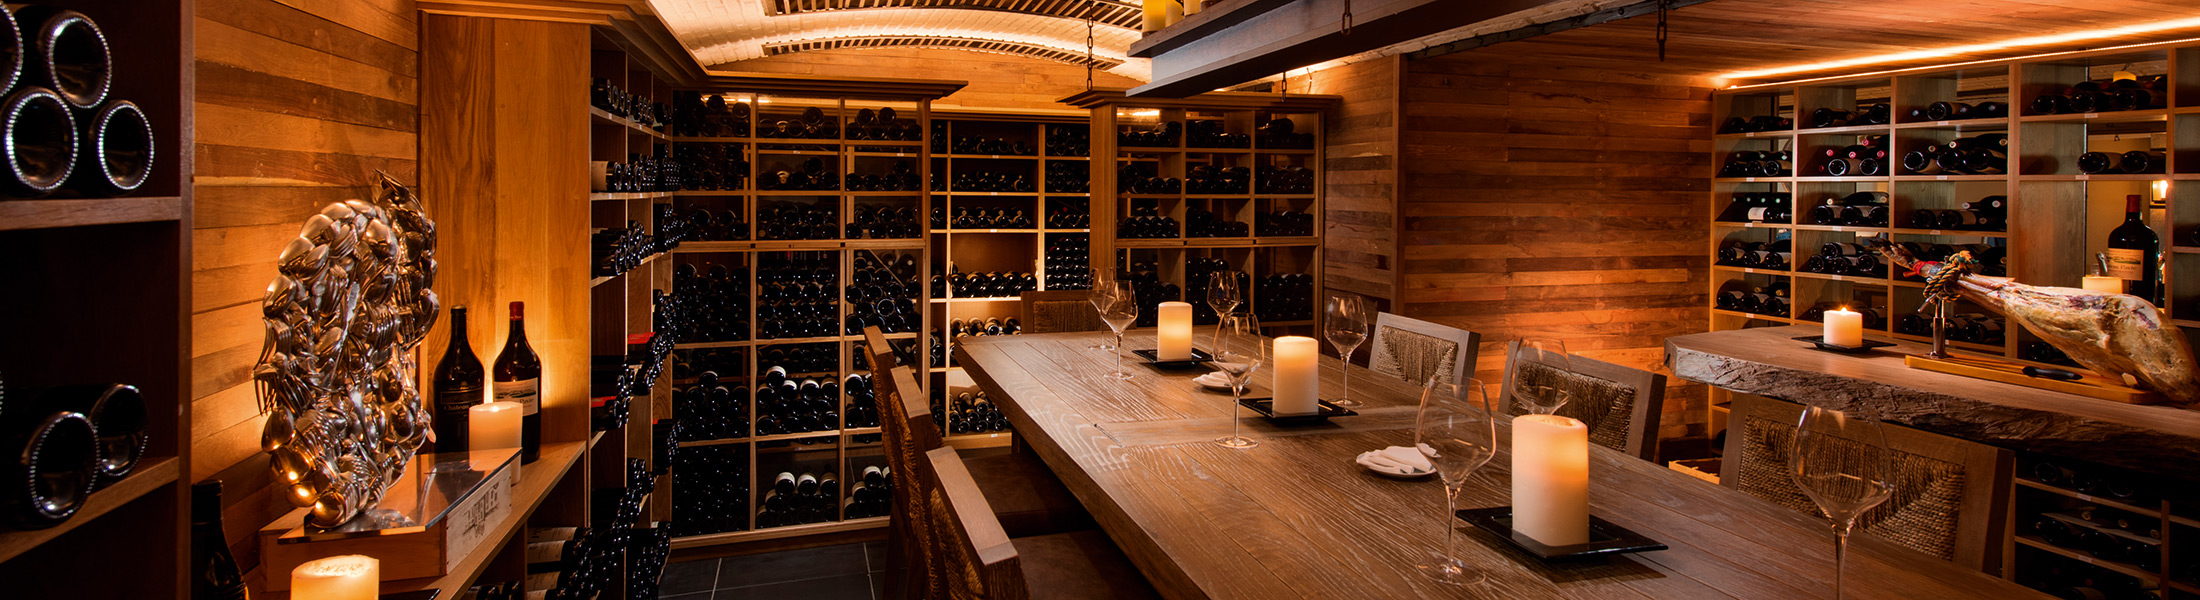 Wine room at Blue Penny Cellar at Constance Belle Mare Plage